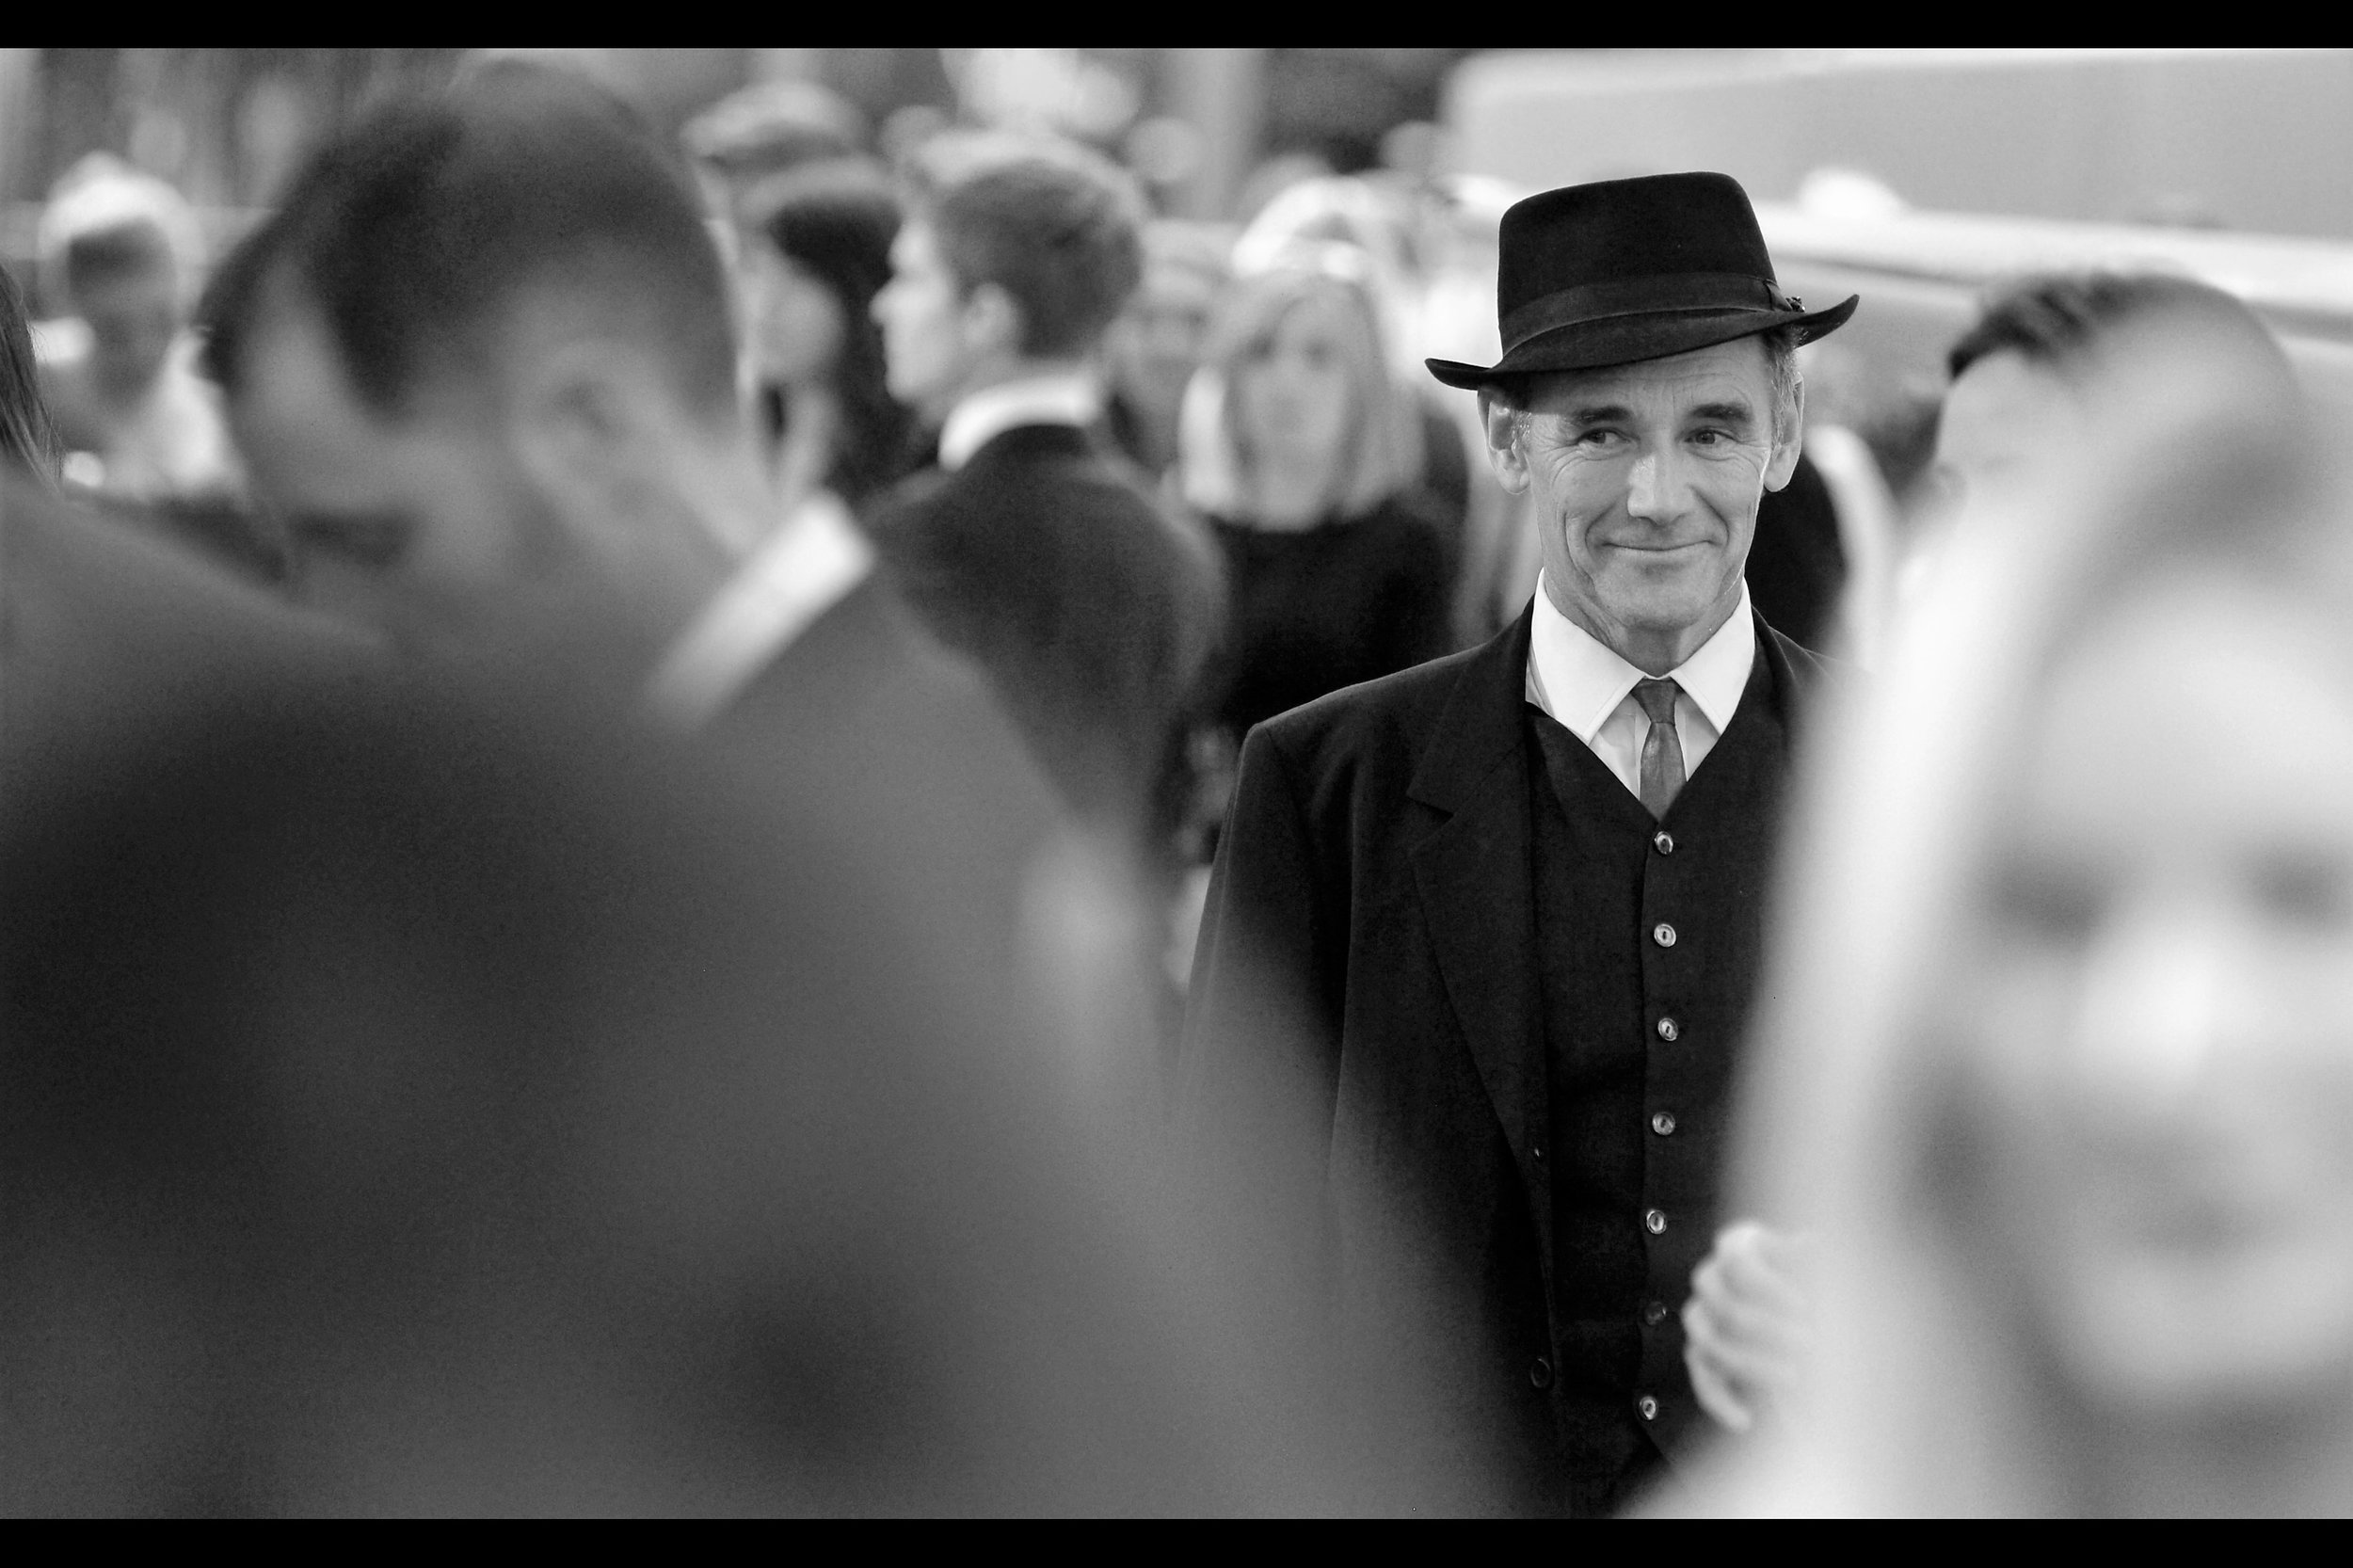 """You can't have the hat, you can't have the tie... and frankly I'm a little miffed that you're looking at these buttons without my permission""  - Mark Rylance won a Best Supporting actor Oscar for Bridge of Spies, and was most recently in Spielberg's ""The BFG"""